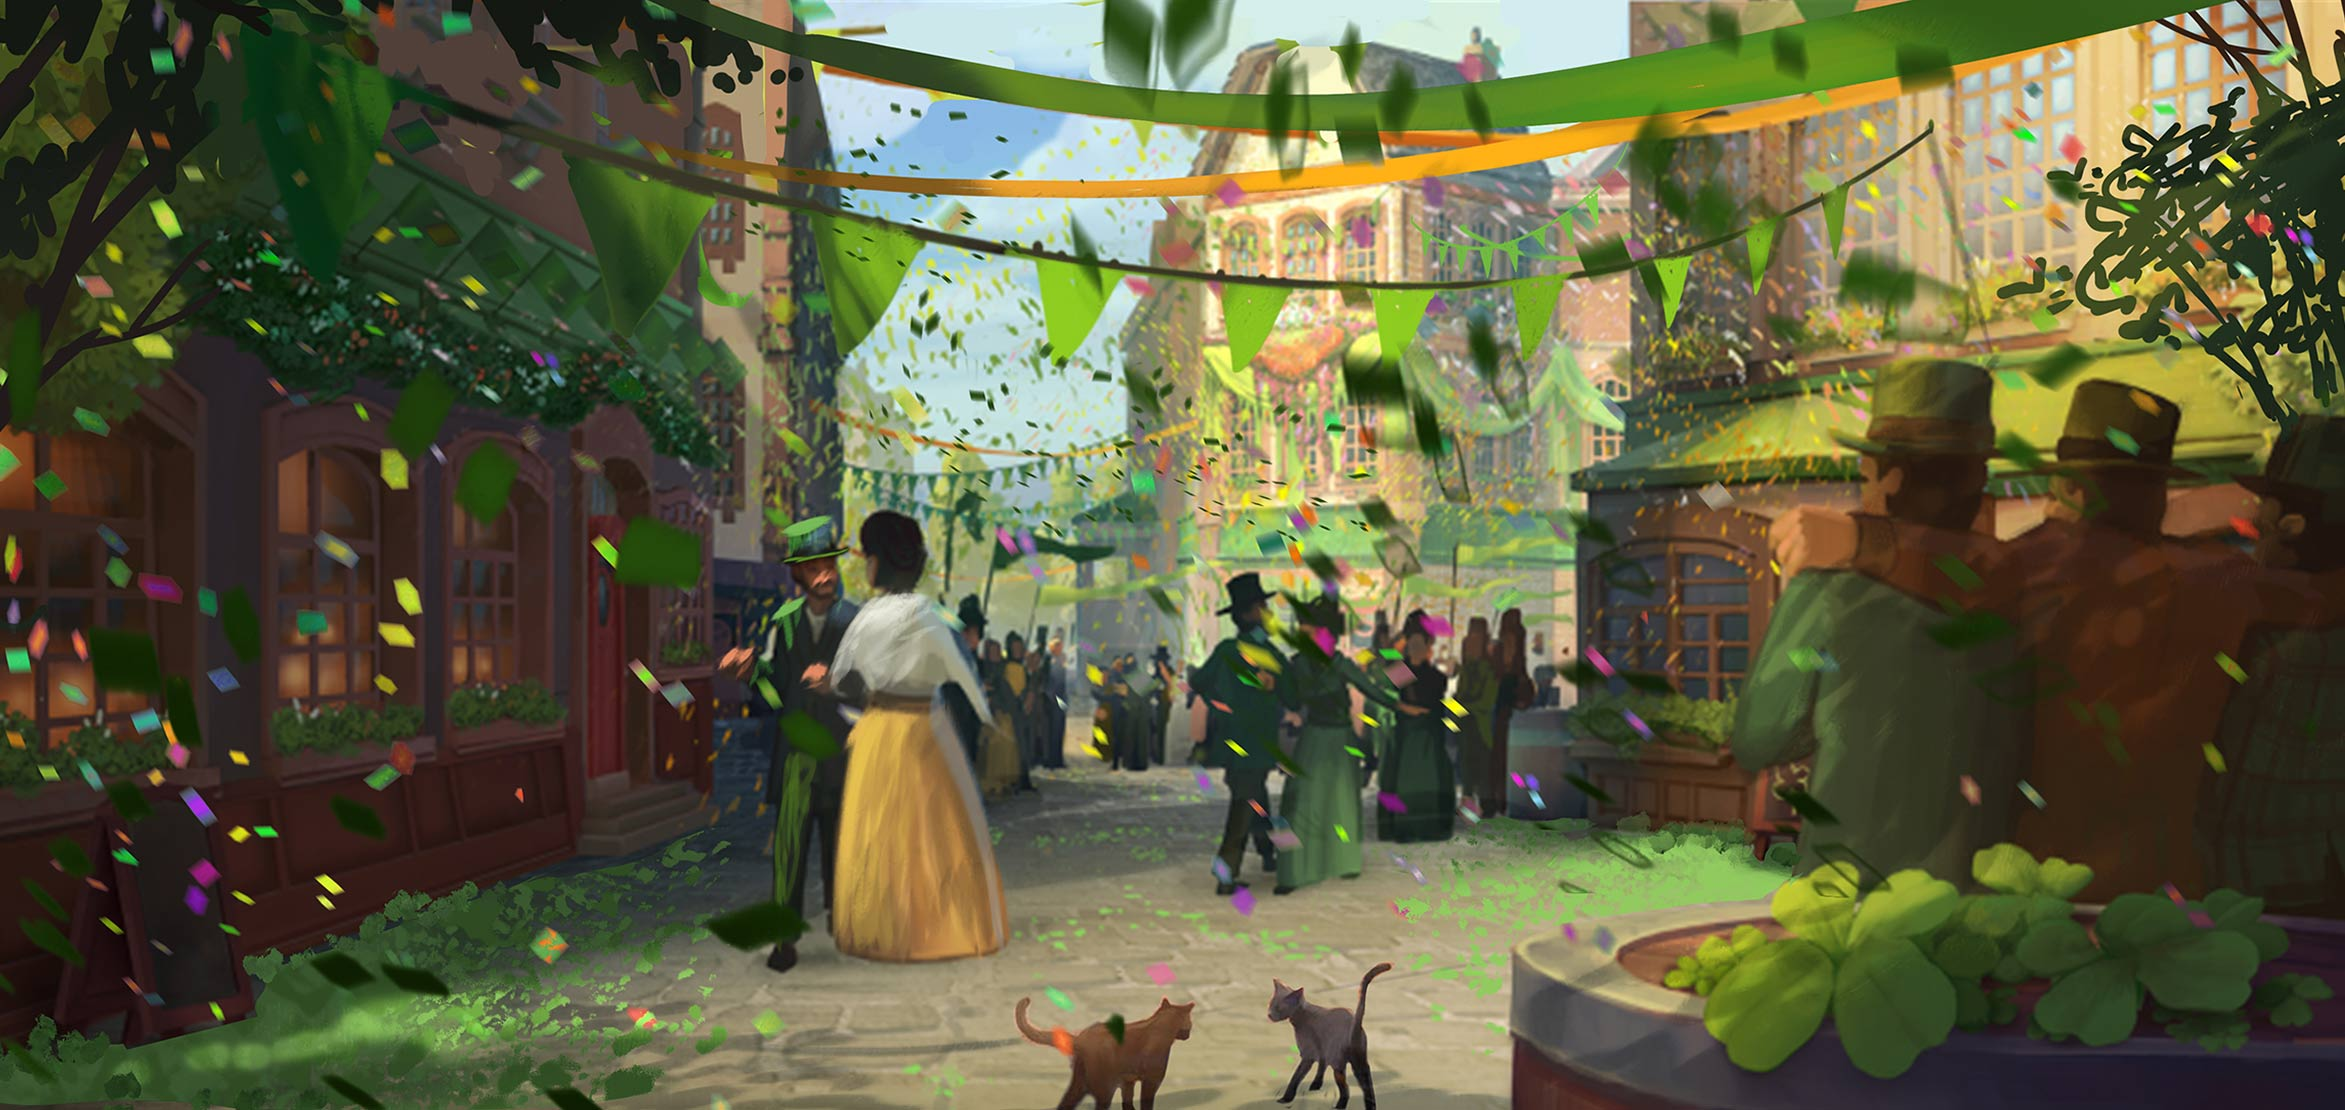 Forge Of Empires Halloween Event 2020 Questline 2020 St Patrick's Day Event | Forge of Empires Wiki | Fandom